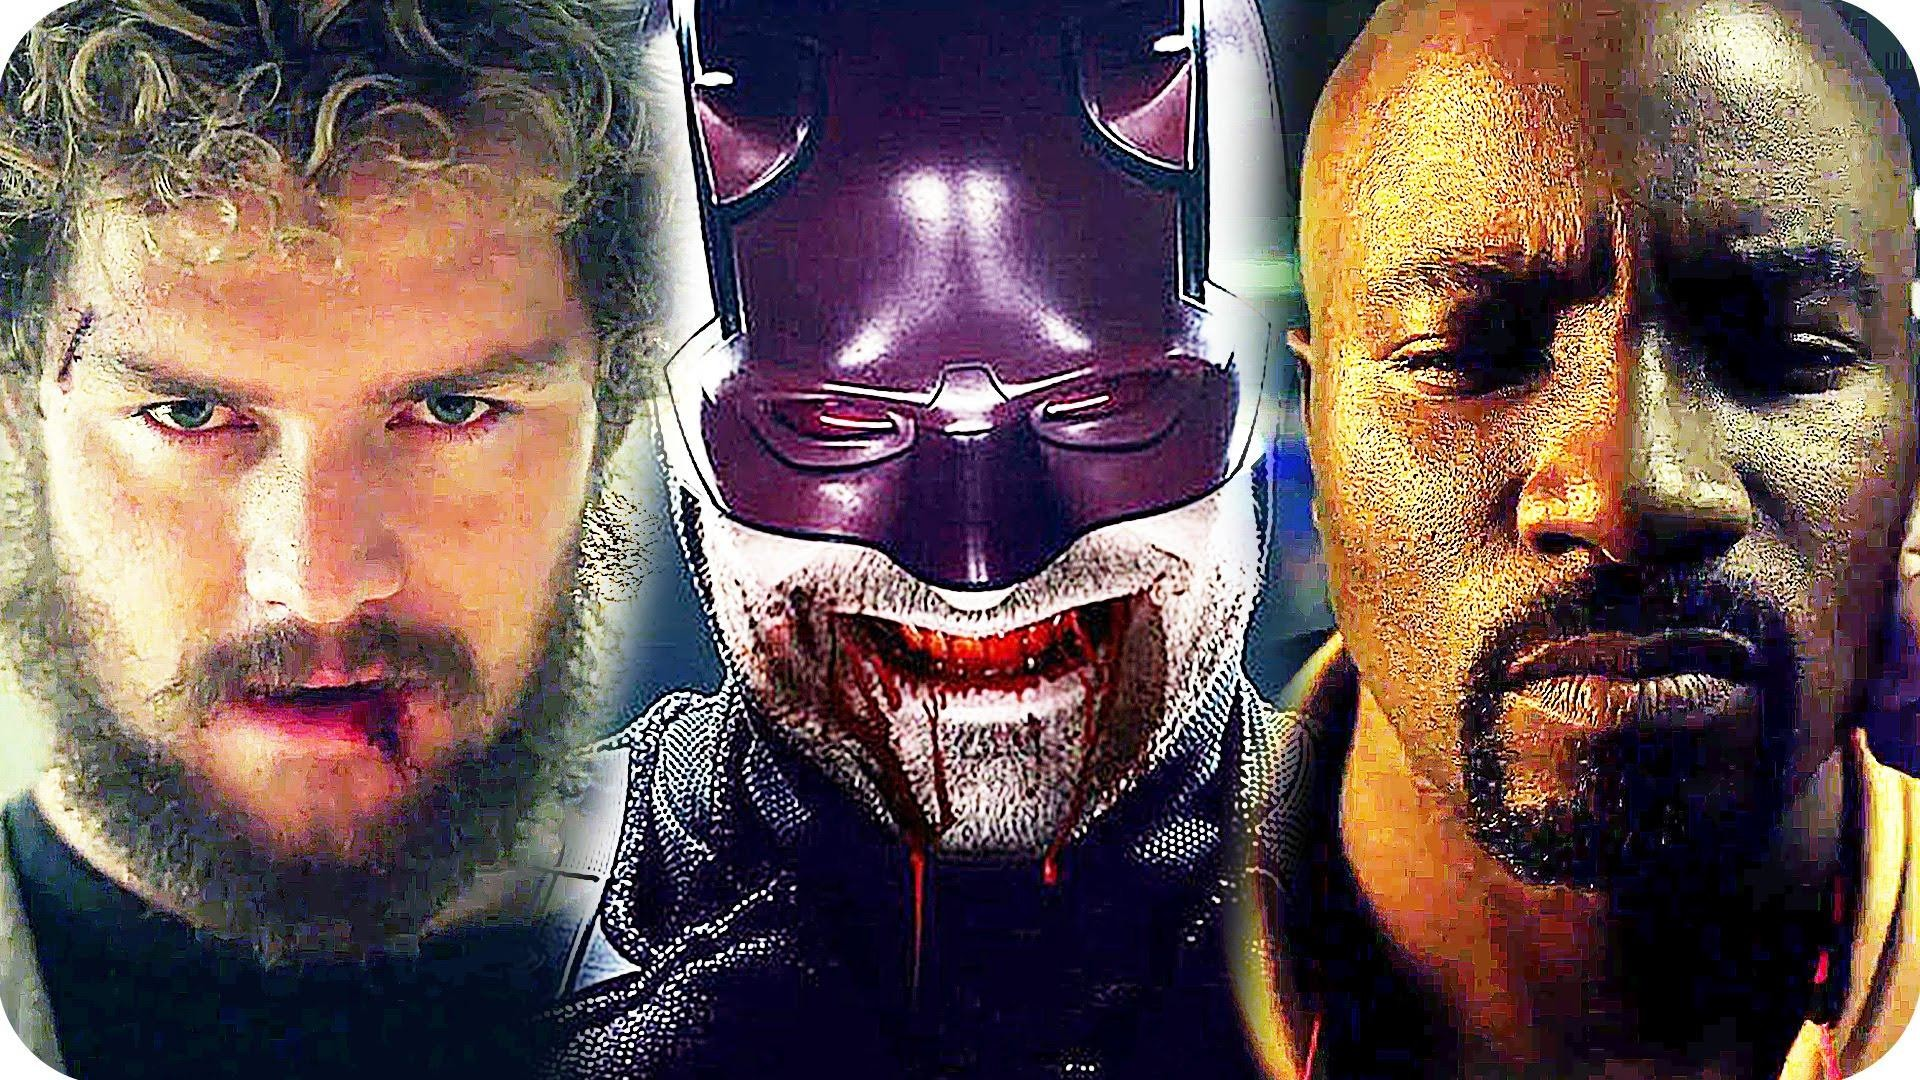 1920x1080 Netflix Has Released A Brief Teaser Trailer For Marvels Upcoming Series The Defenders It Shows Daredevil Jessica Jones Luke Cage